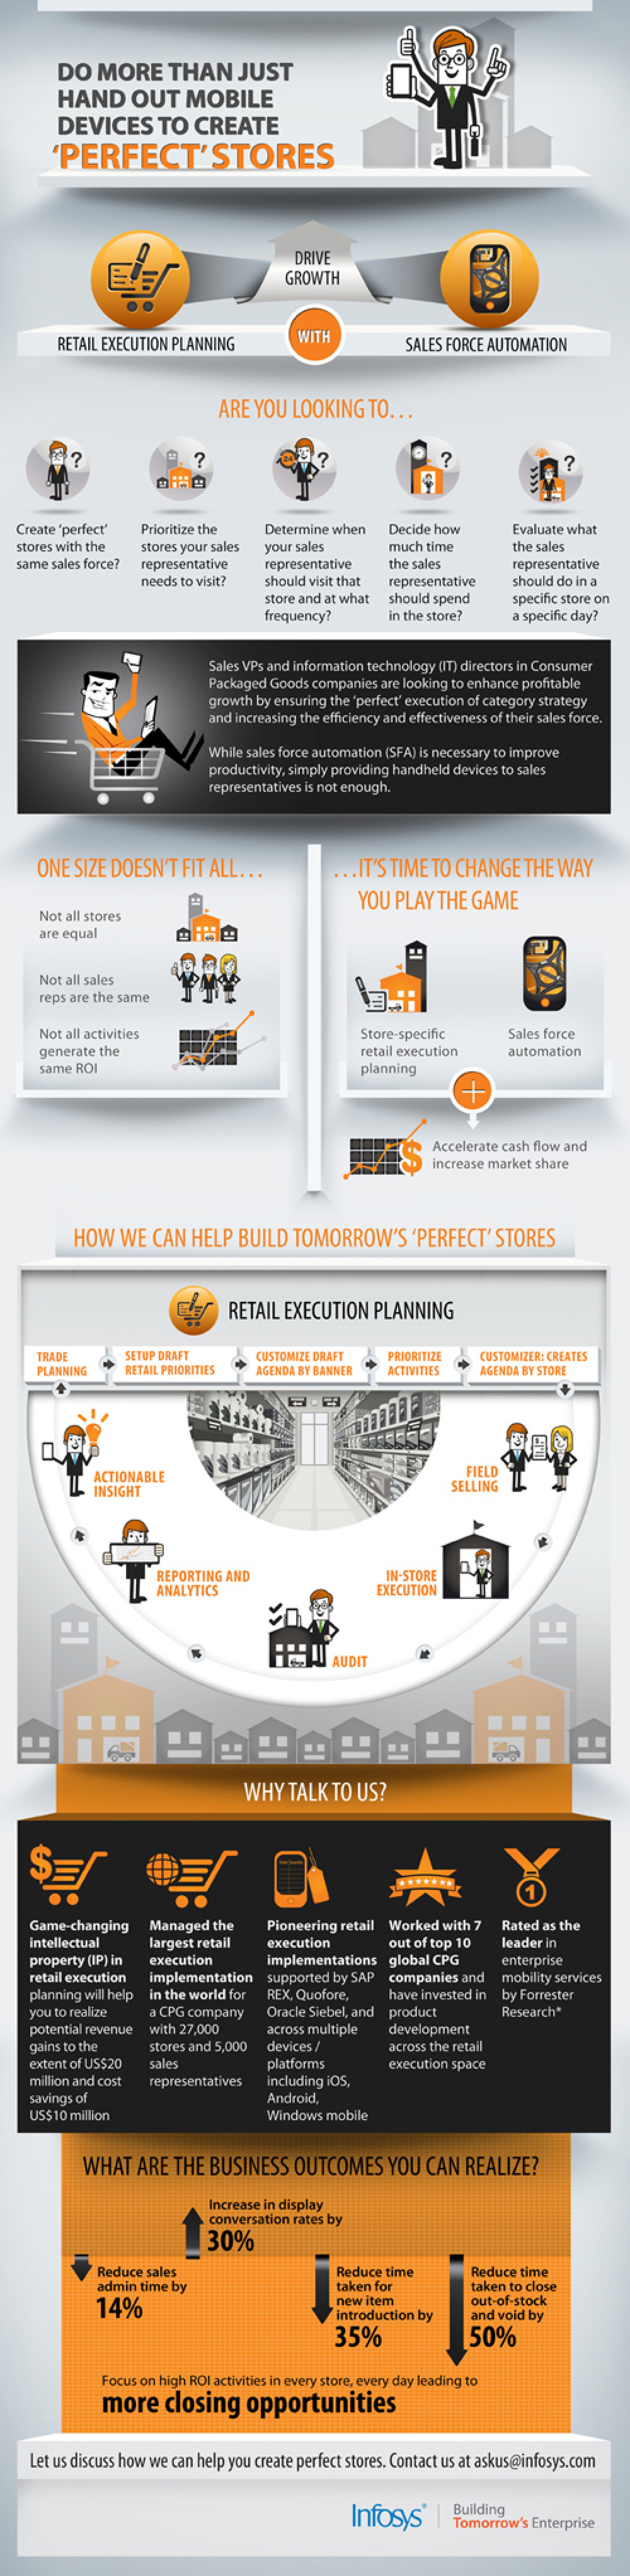 Infosys - CPG Mobile Solutions For Consumer Package Goods | Retail Automation & Strategy Infographic